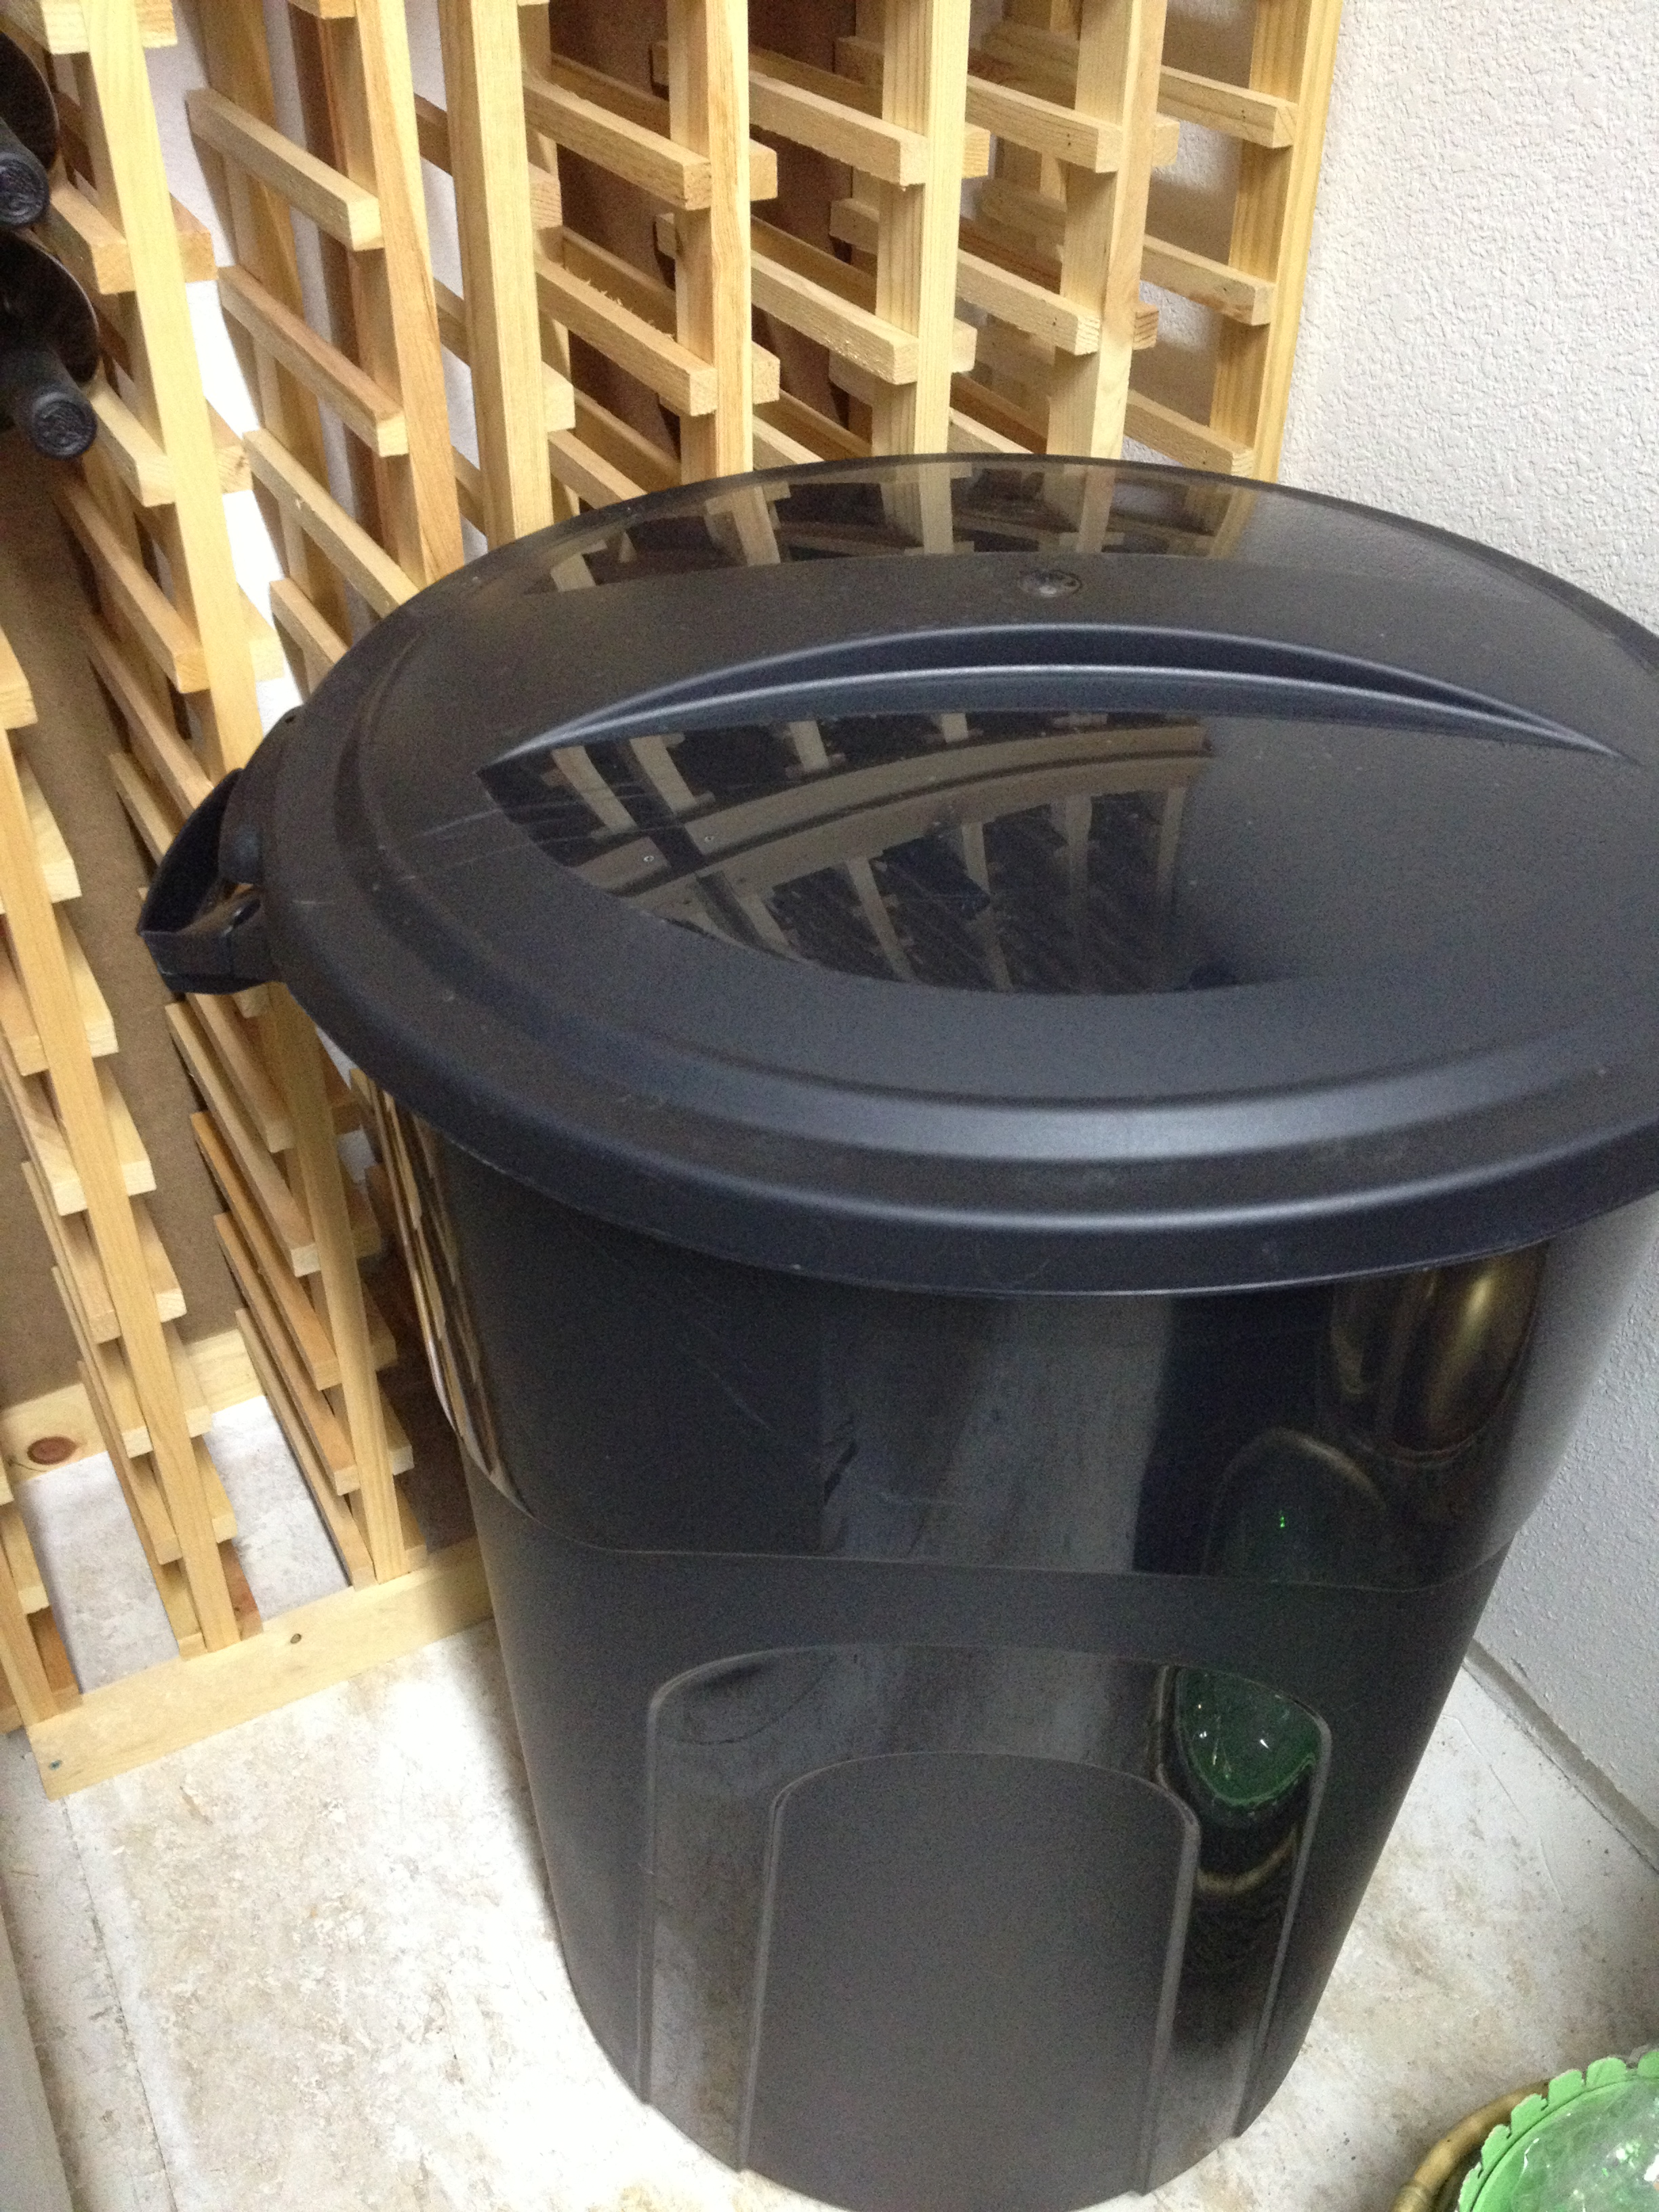 How To Make A Trash Can Rain Barrel Survival Tips And Tricks